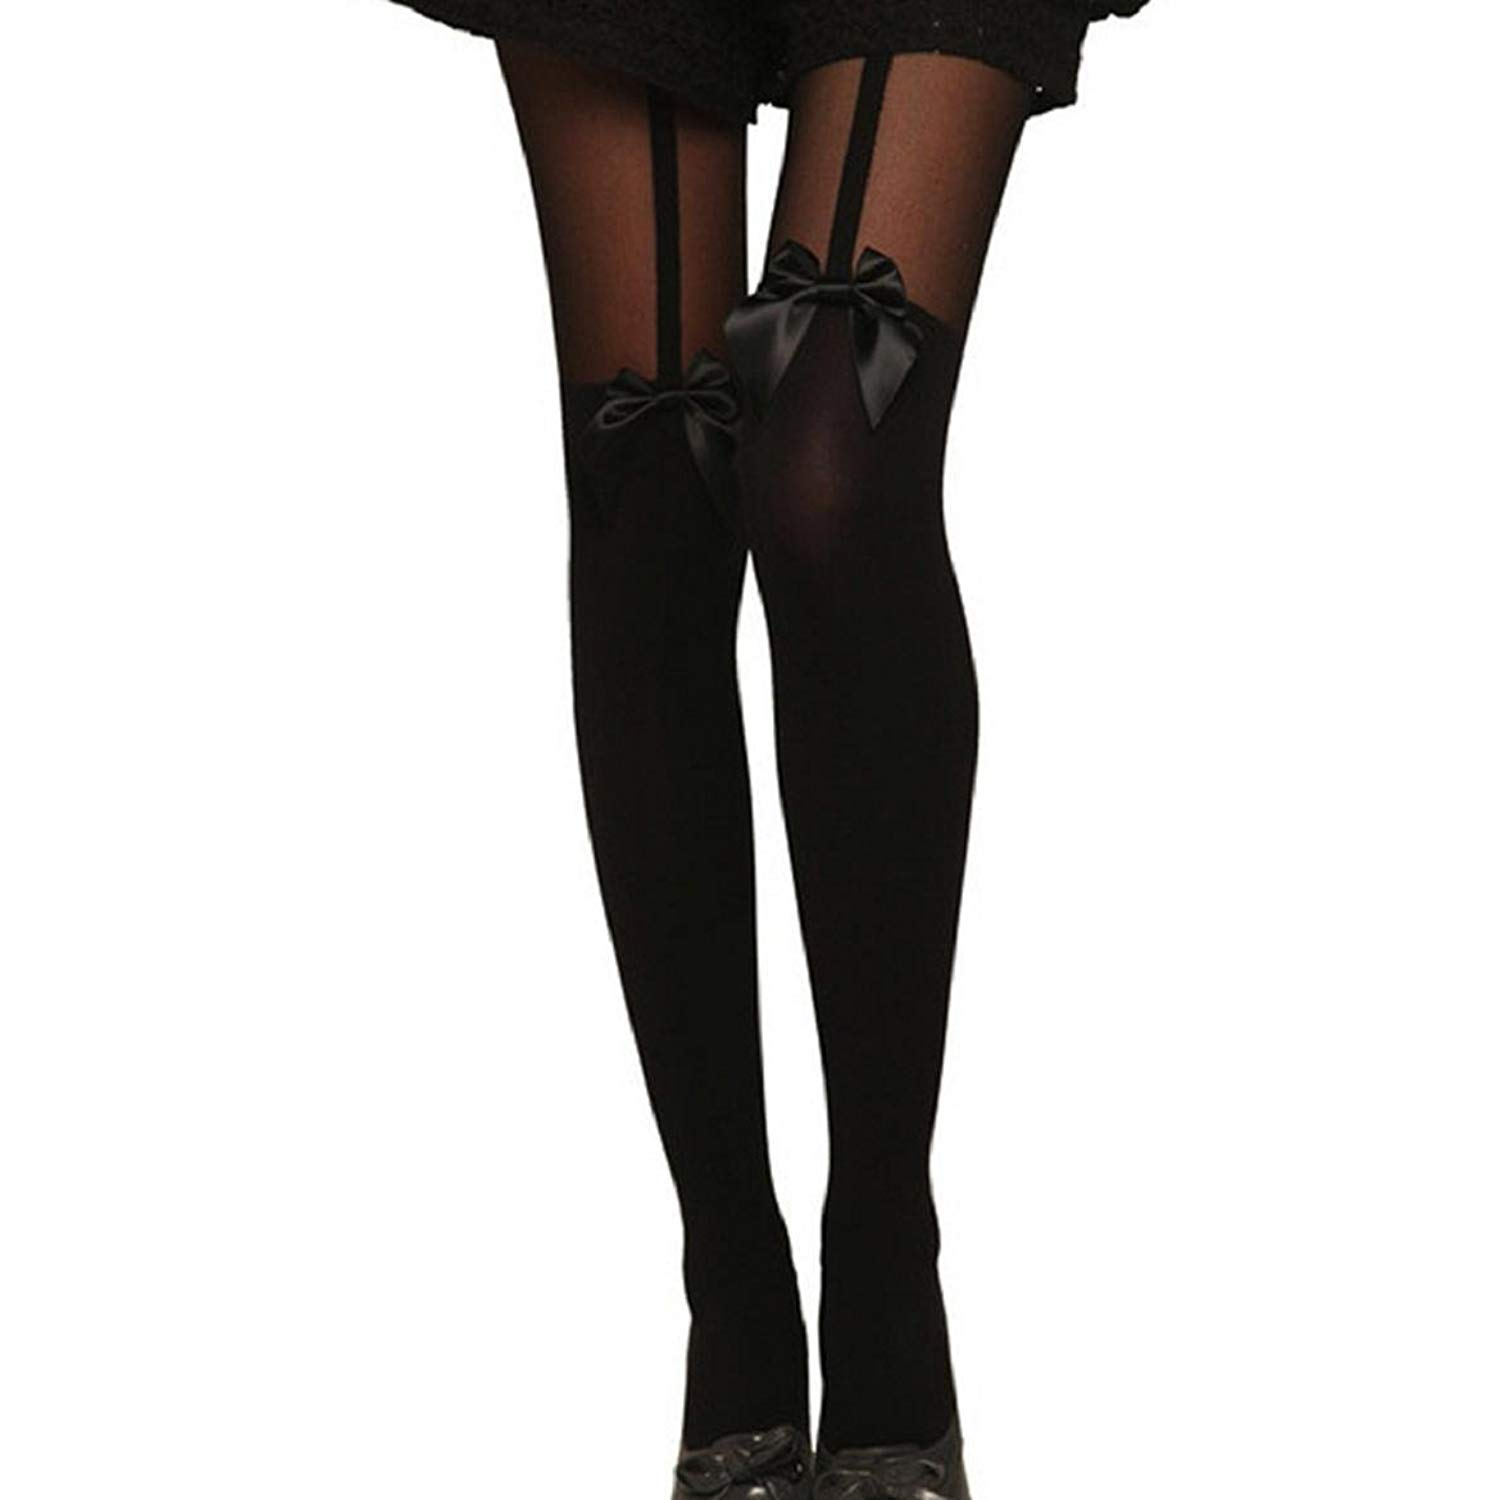 27661ab9708 Get Quotations · Susenstone®Tights Bow Pantyhose